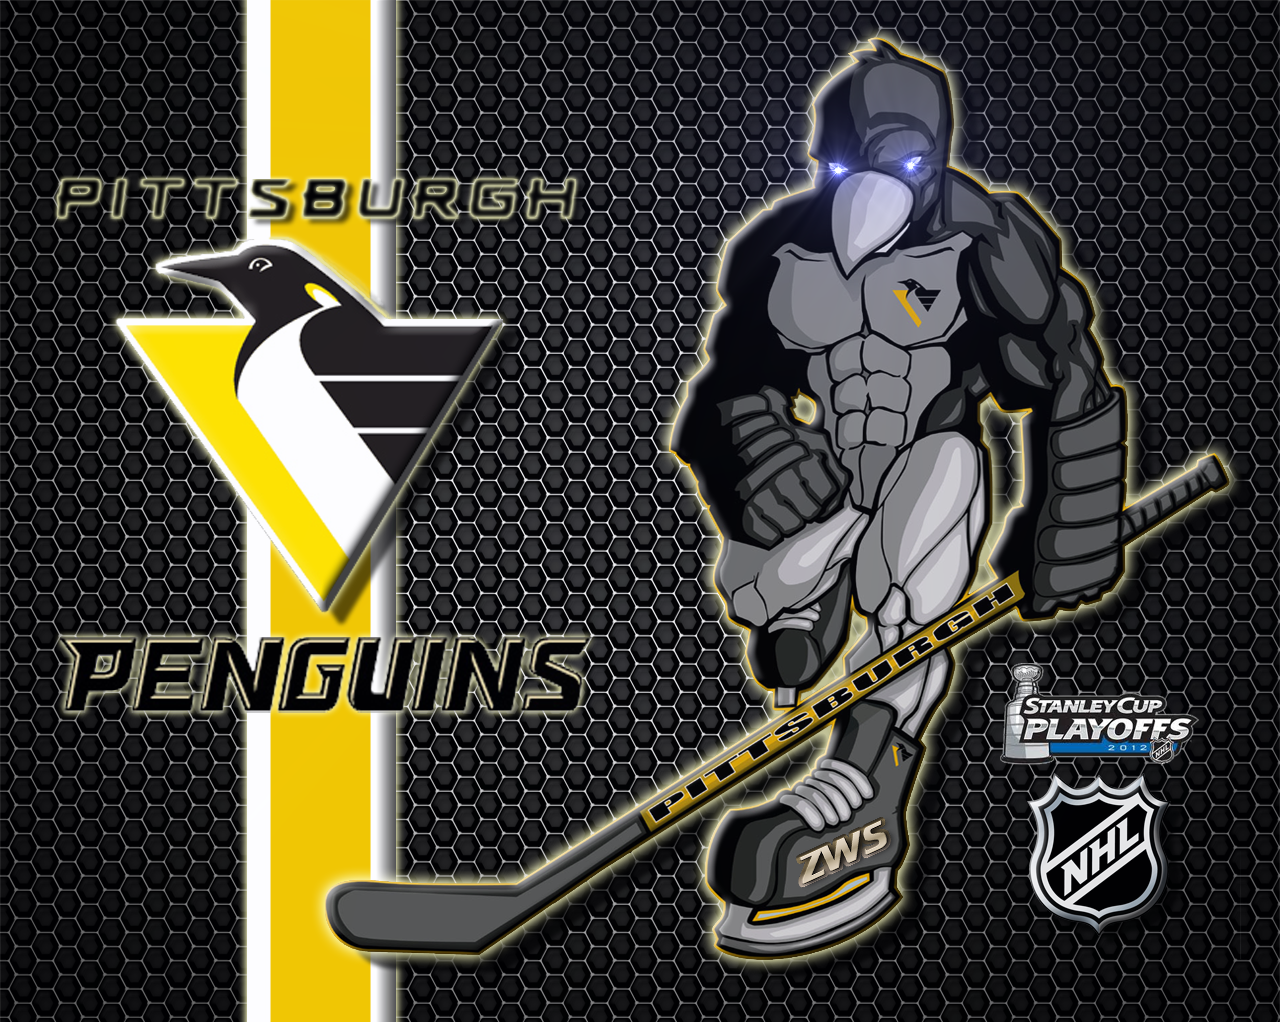 Pittsburgh Penguins Wallpaper GO PENS!! - Picture